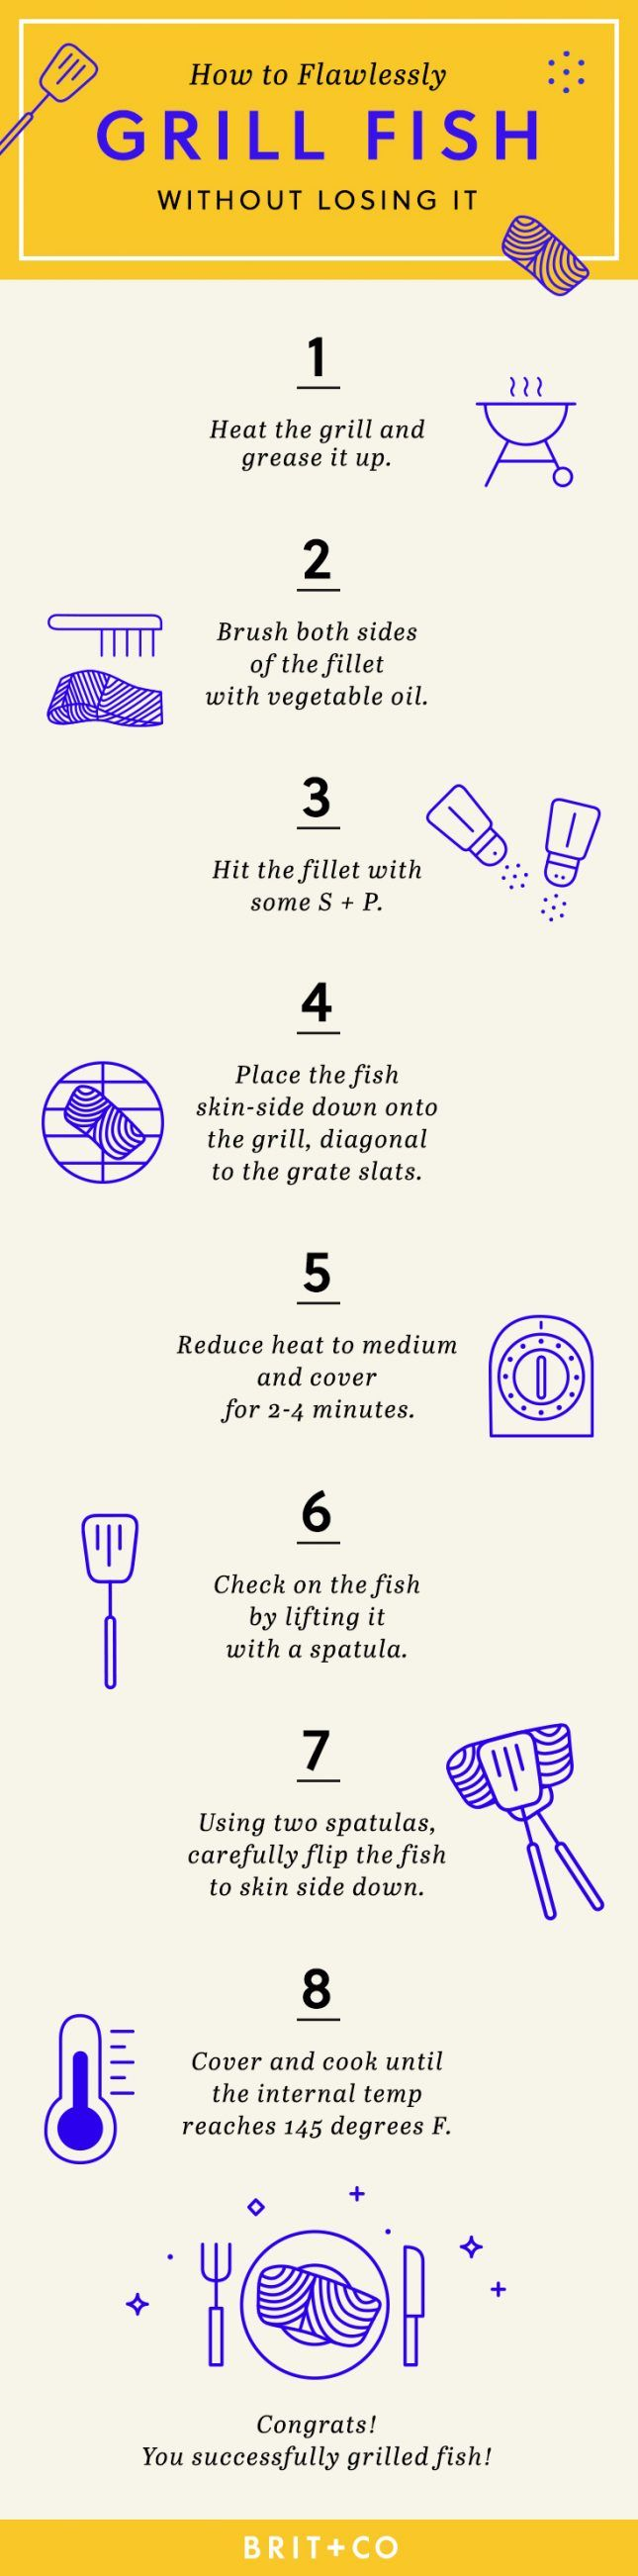 How to Flawlessly Grill Fish Without Losing It via Brit   Co